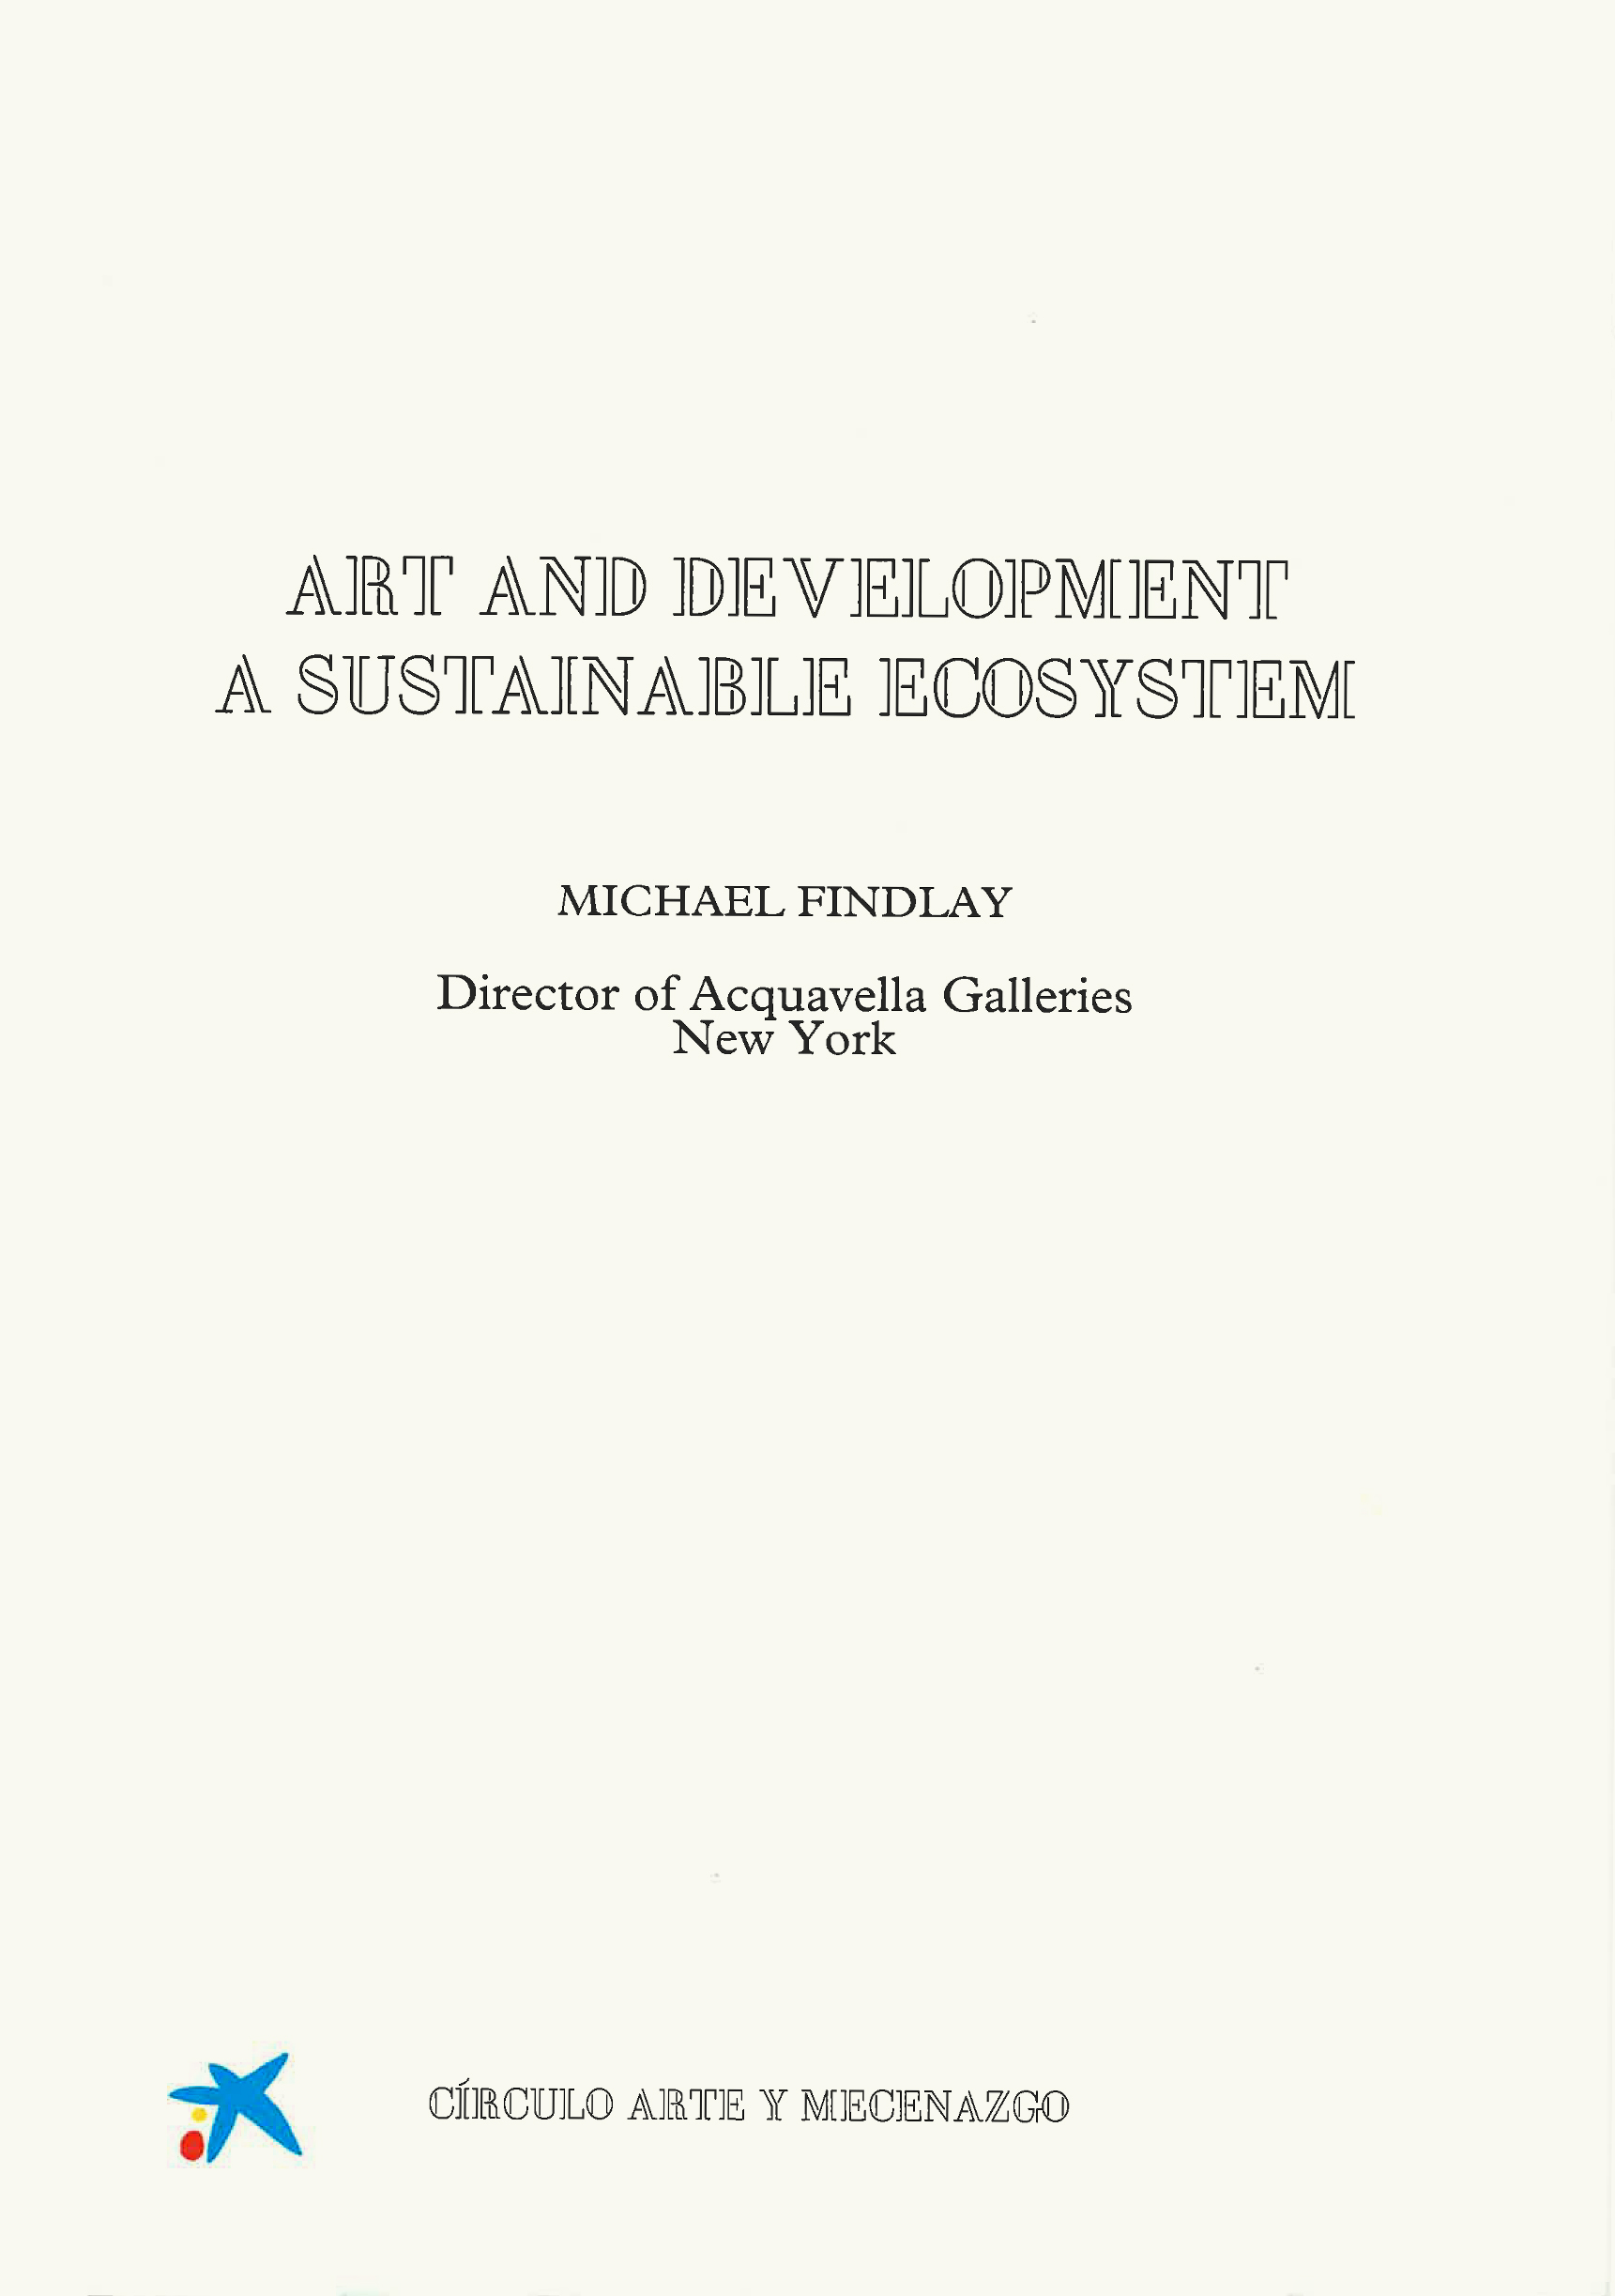 Findlay, Michael. (2016) 'Art and Development: A Sustainable Ecosystem', Fundación Arte y Mecenazgo, Barcelona: Fundación Arte y Mecenazgo, p. 1-26.